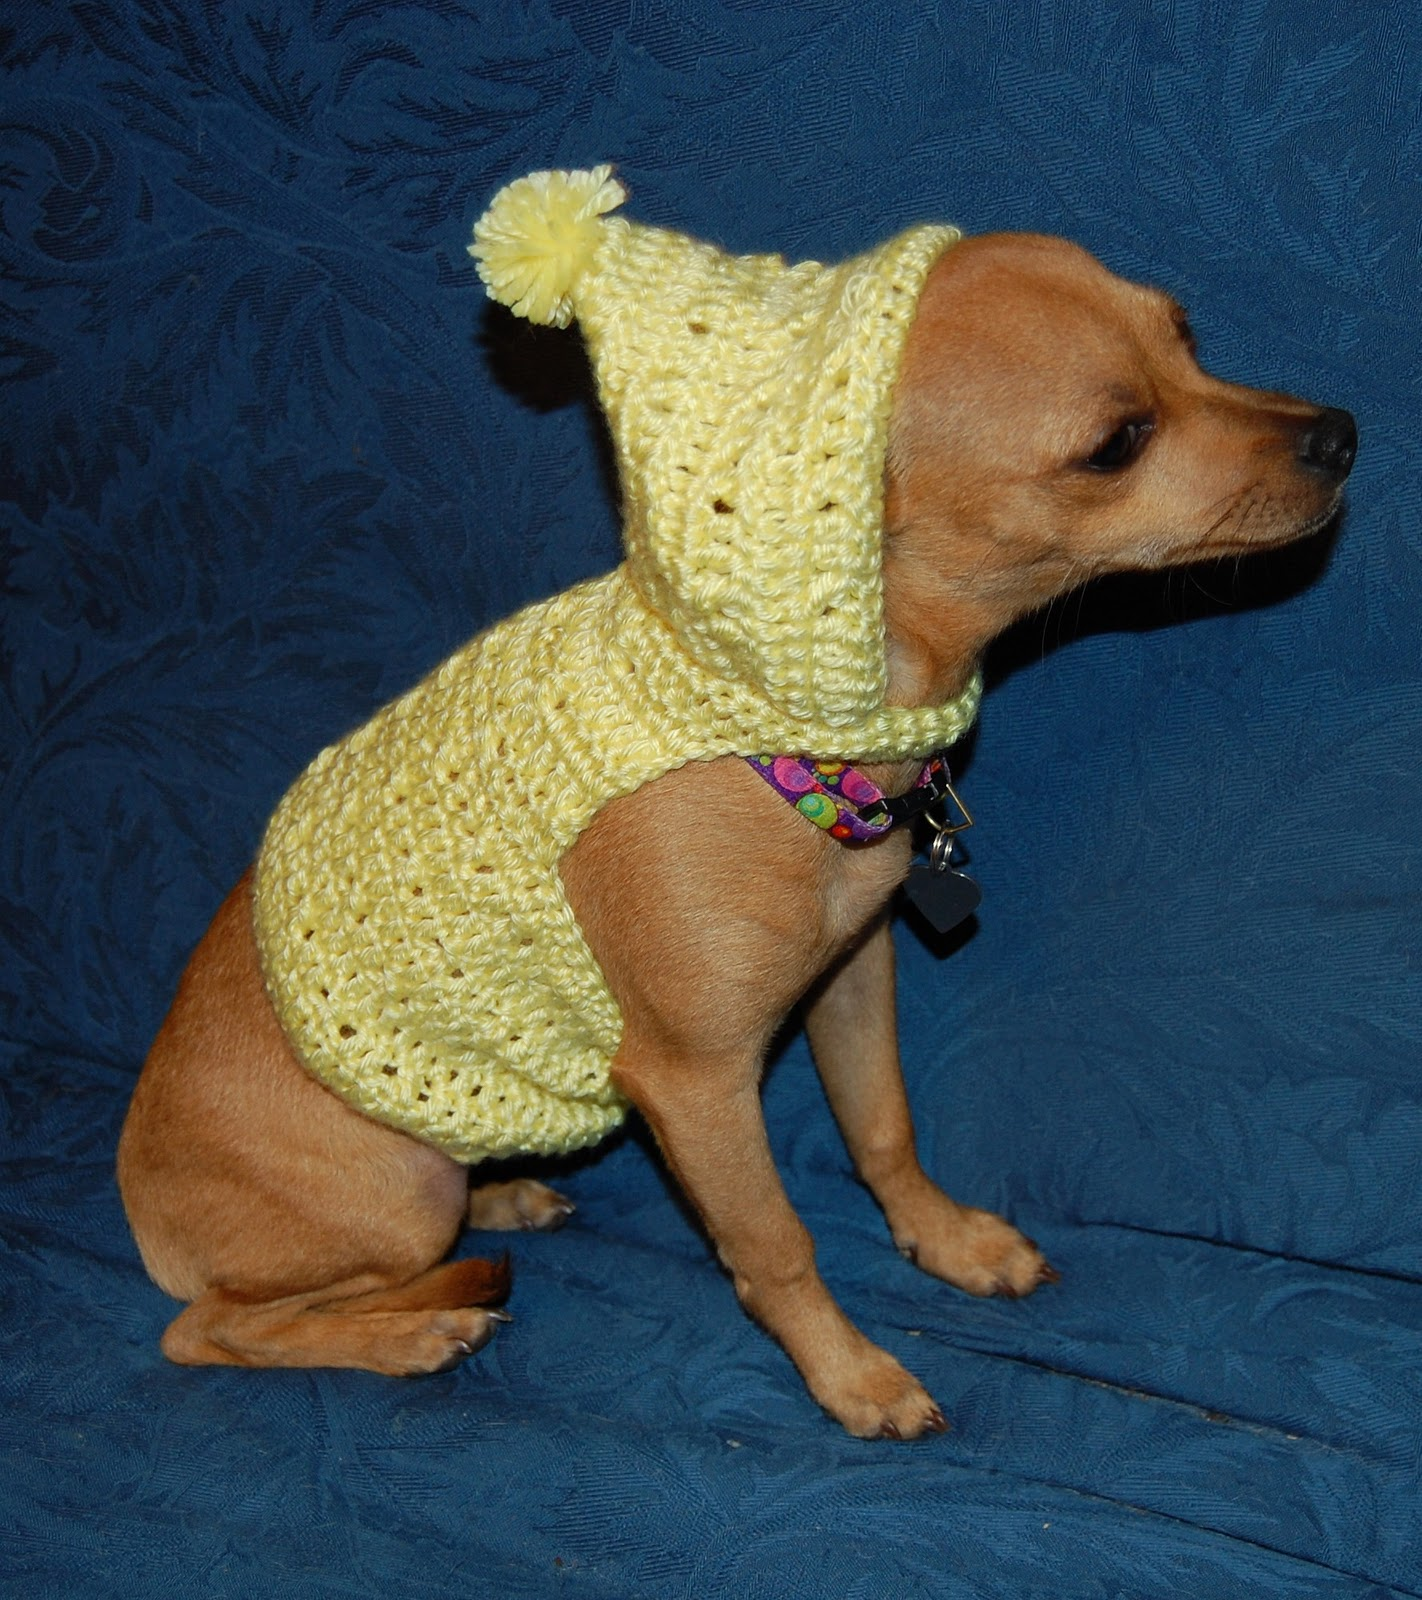 CHIHUAHUA SWEATER CROCHET PATTERN – Crochet Patterns